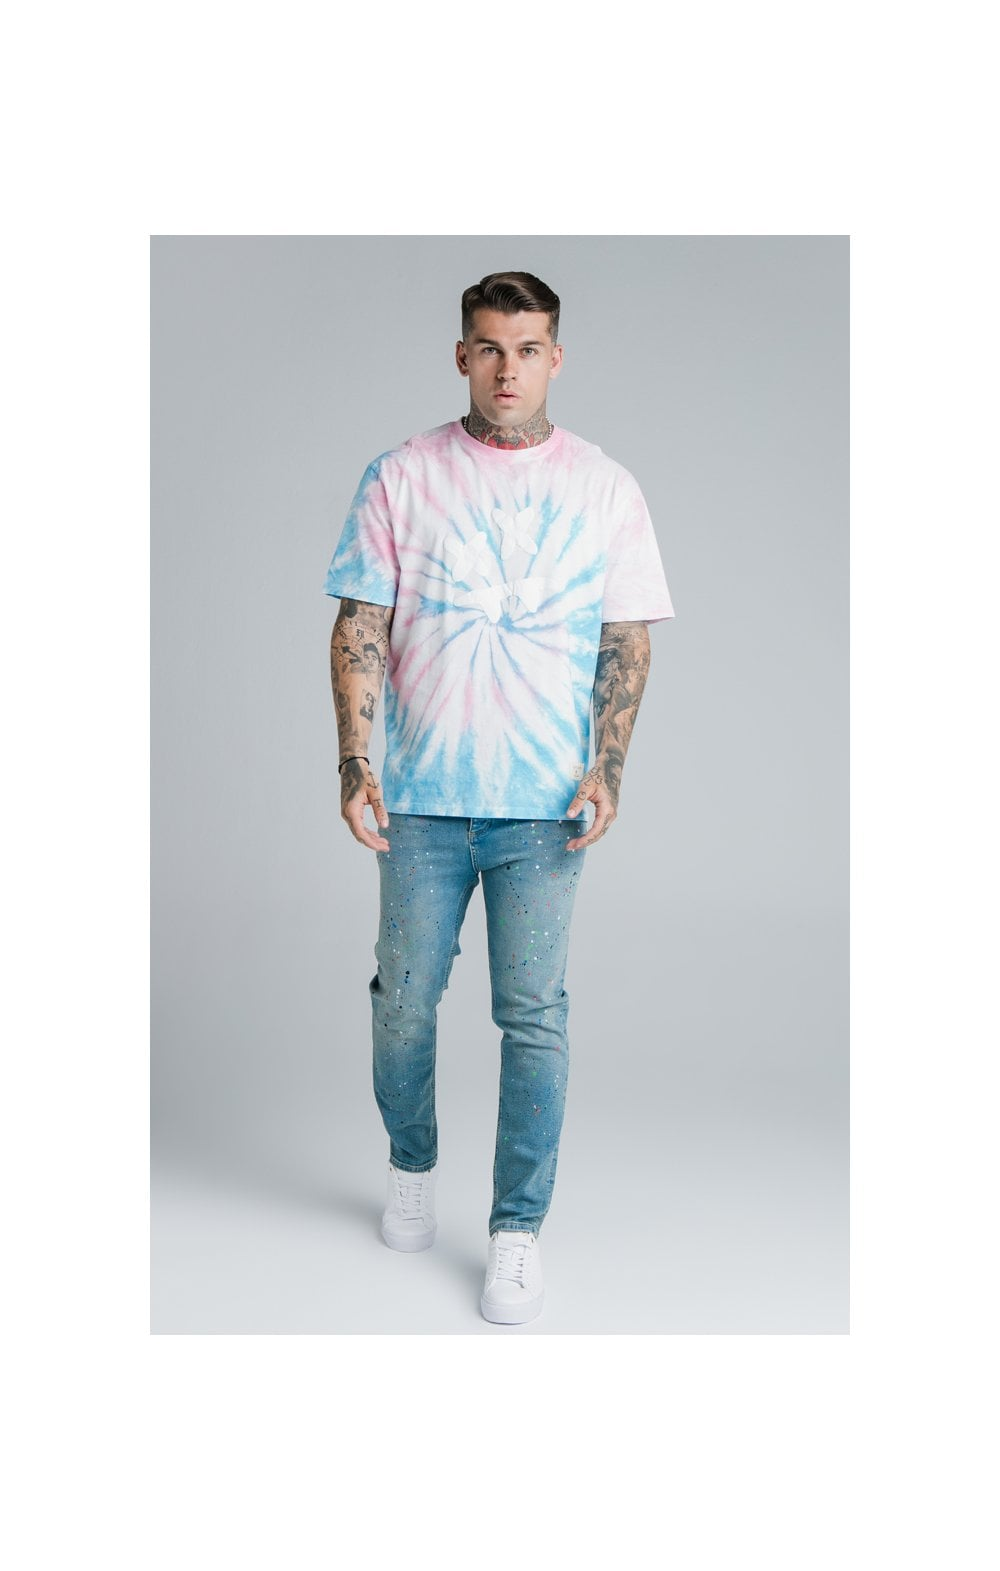 Load image into Gallery viewer, SikSilk X Steve Aoki Loose Fit Riot Denims - Light Wash (3)